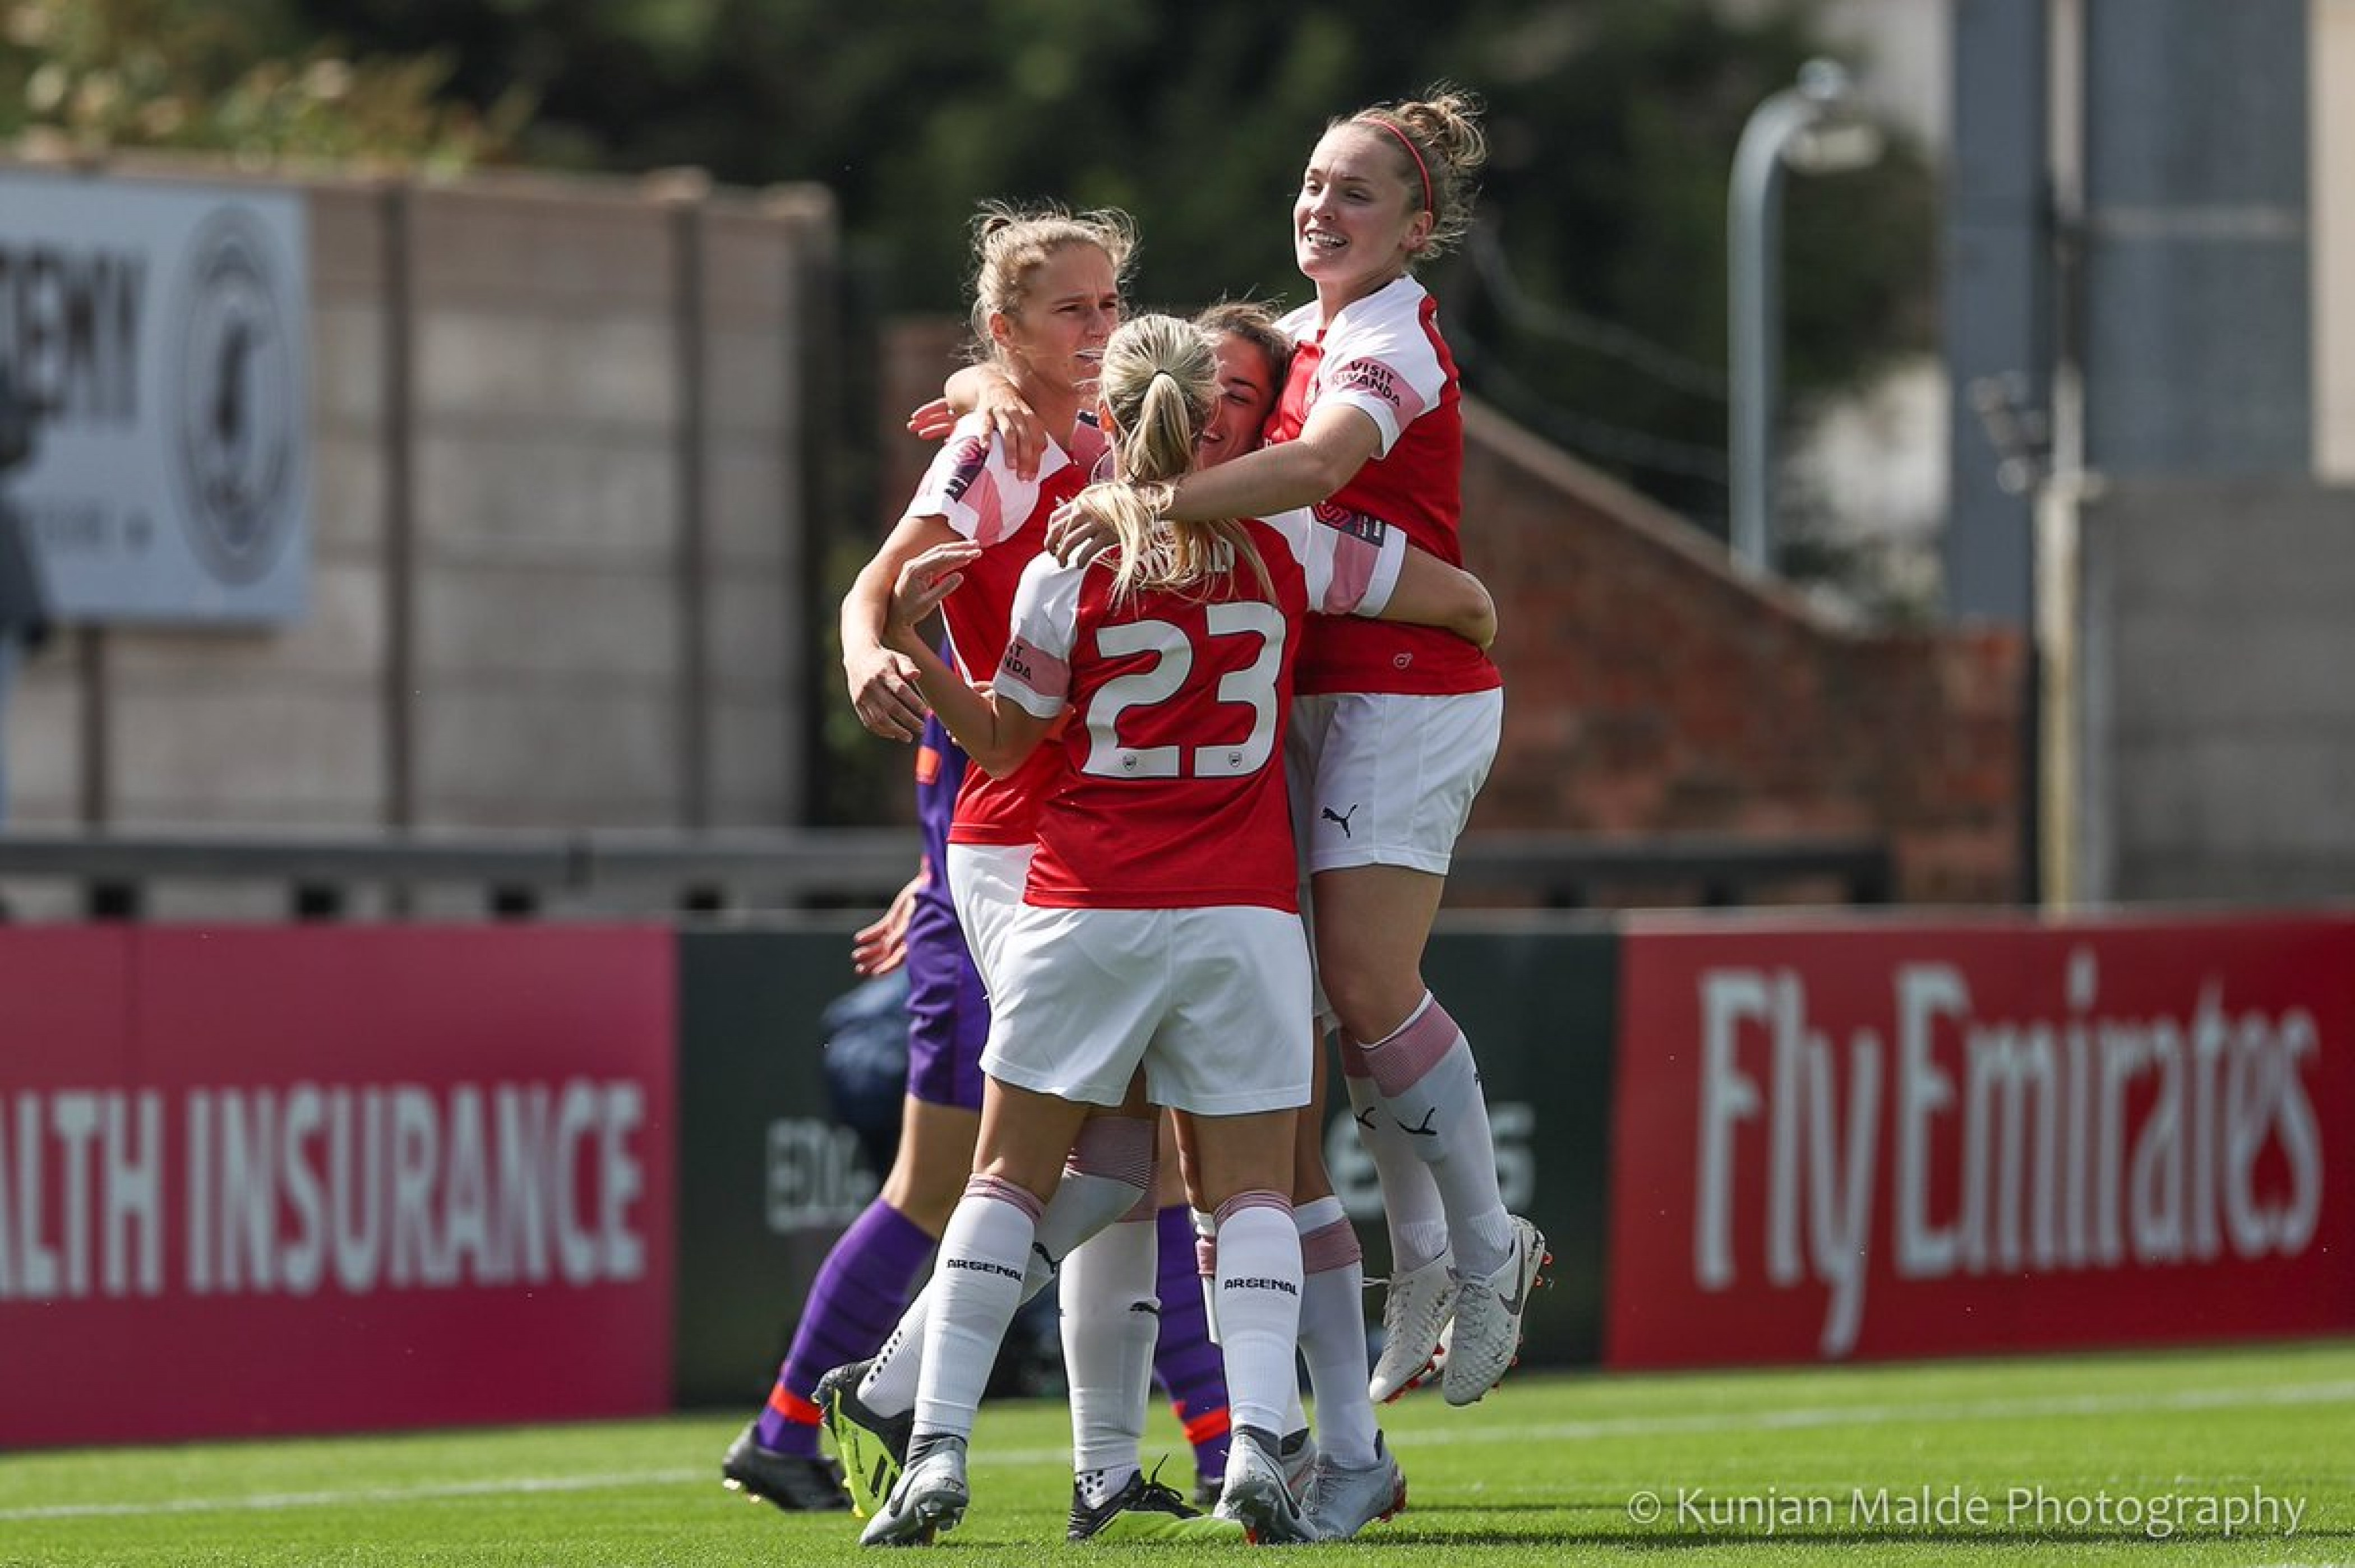 WSL Week 2 Review: Arsenal continue to impress as Birmingham challenge in the top and Man City claim their first